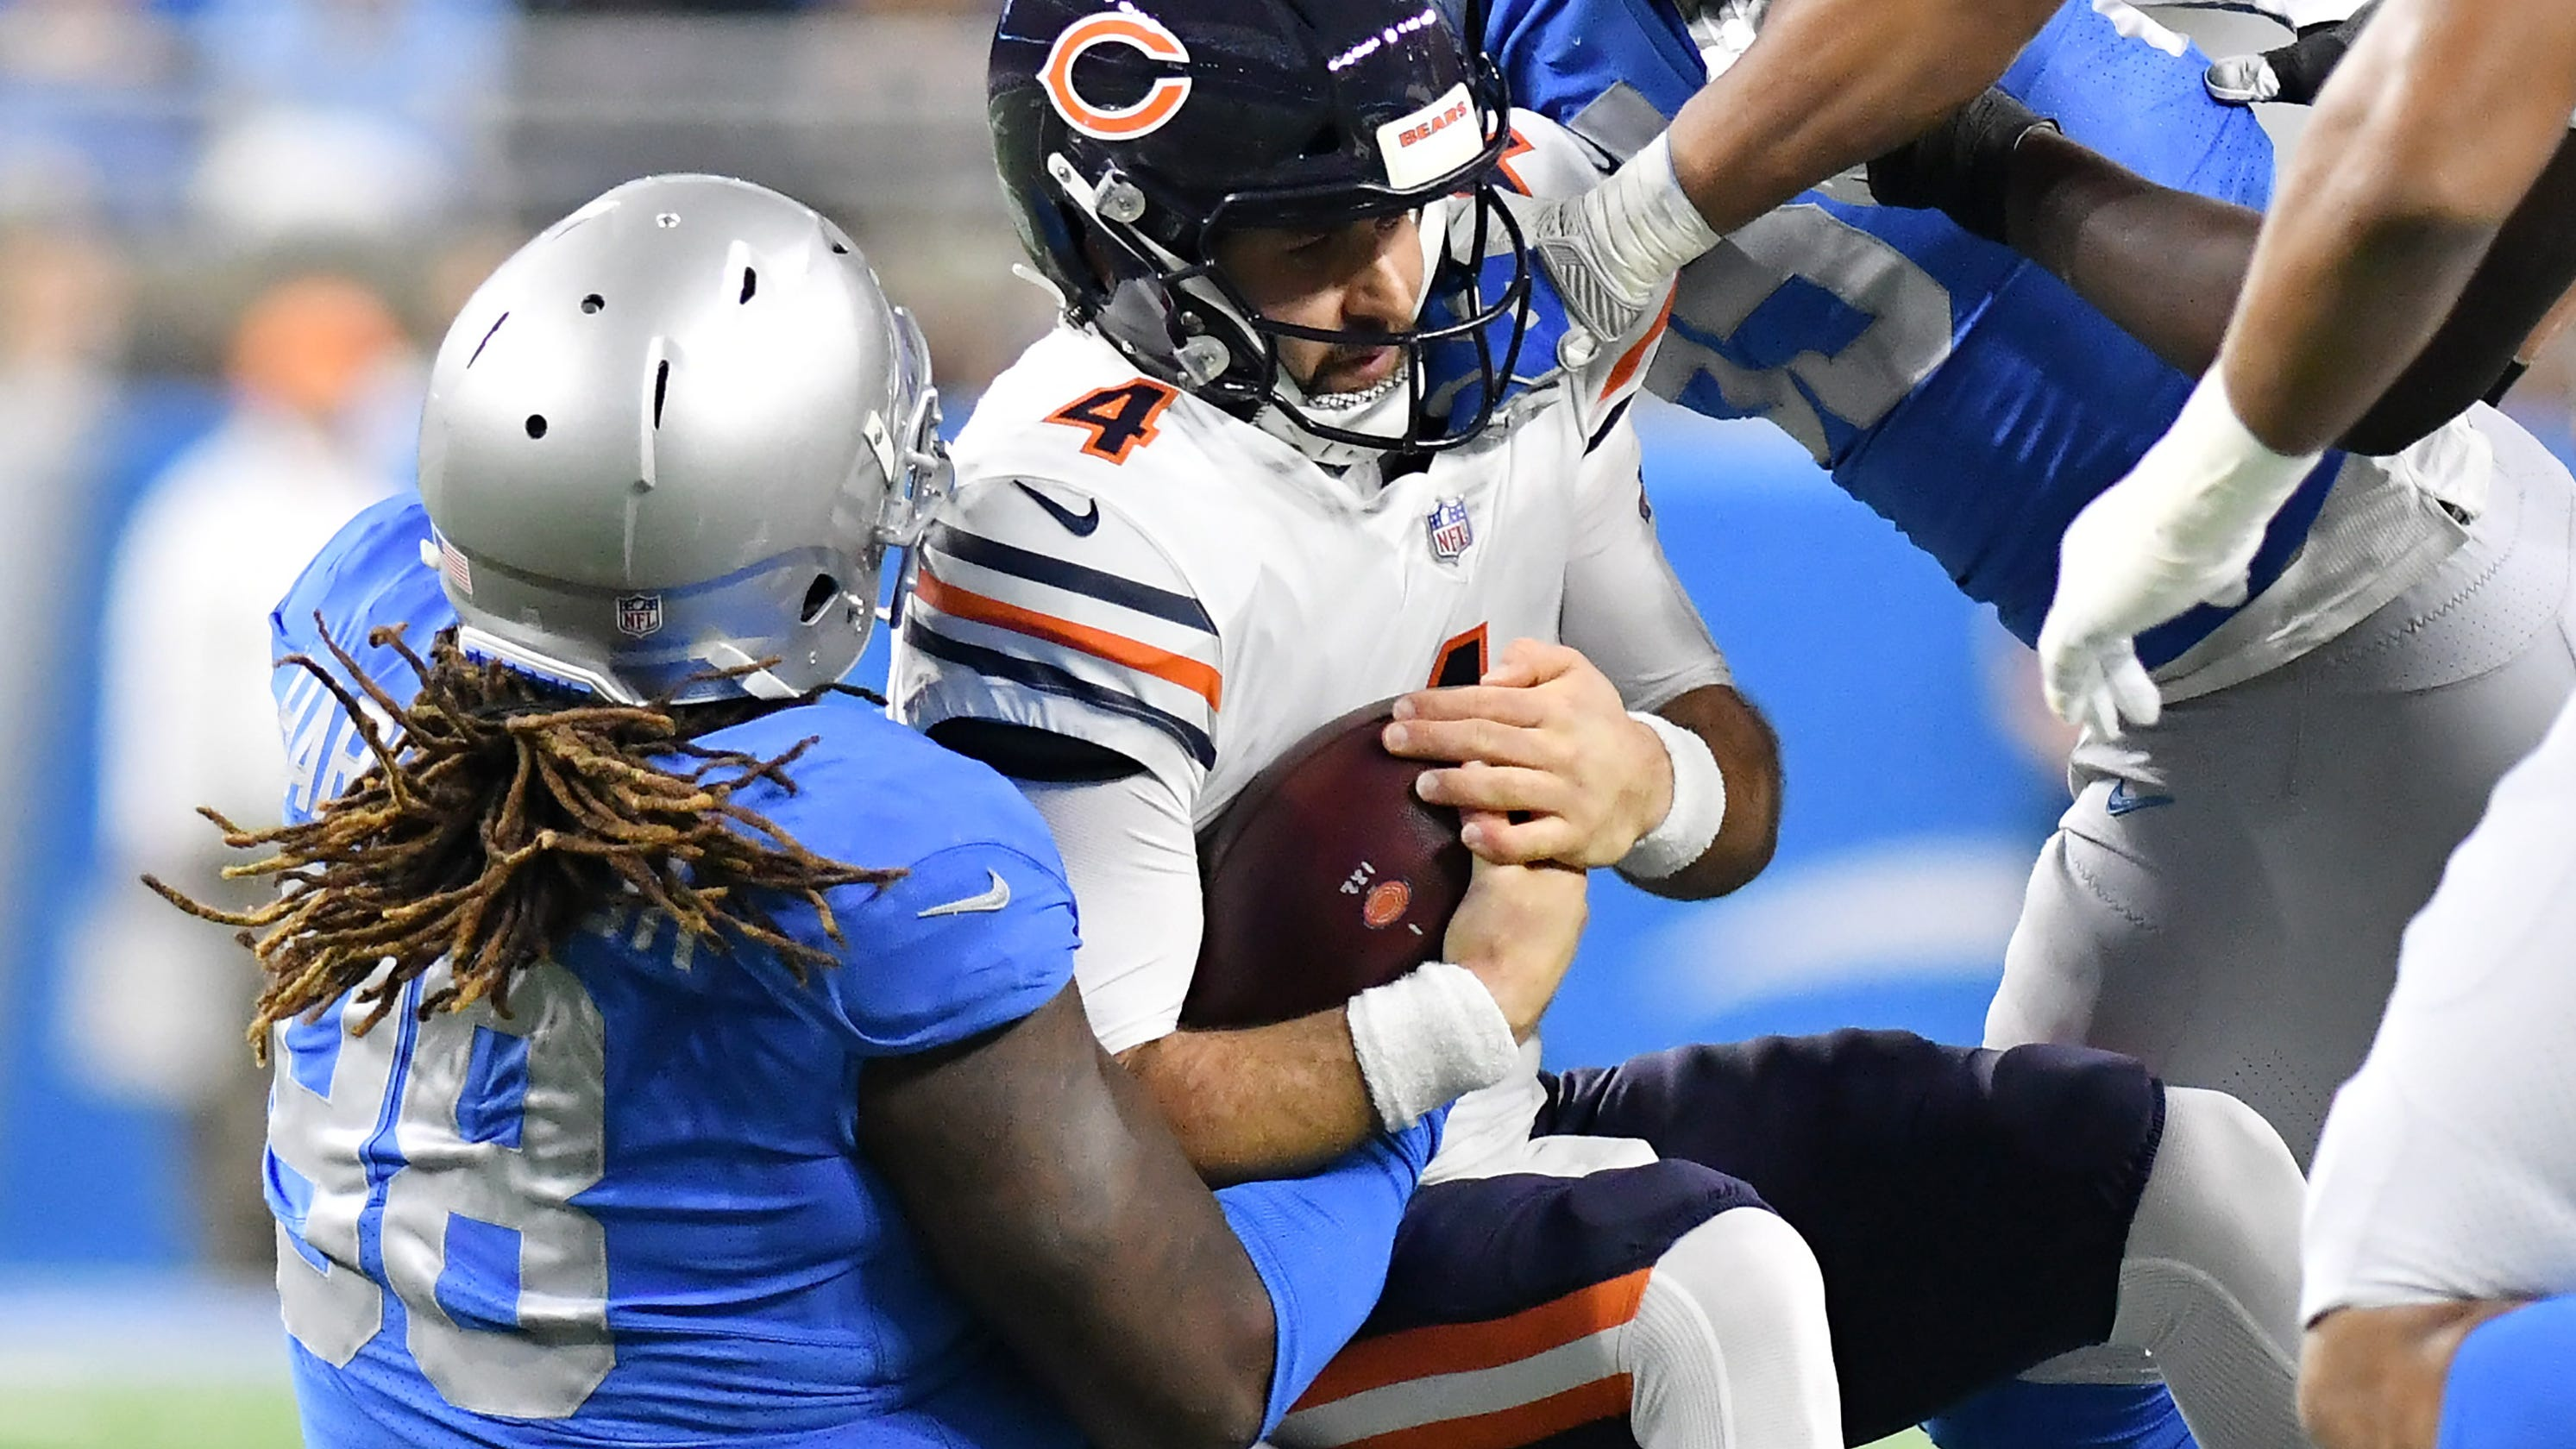 a9a7617f62b Detroit Lions mailbag: Don't make too much out of Darius Slay, Damon  Harrison missing OTAs